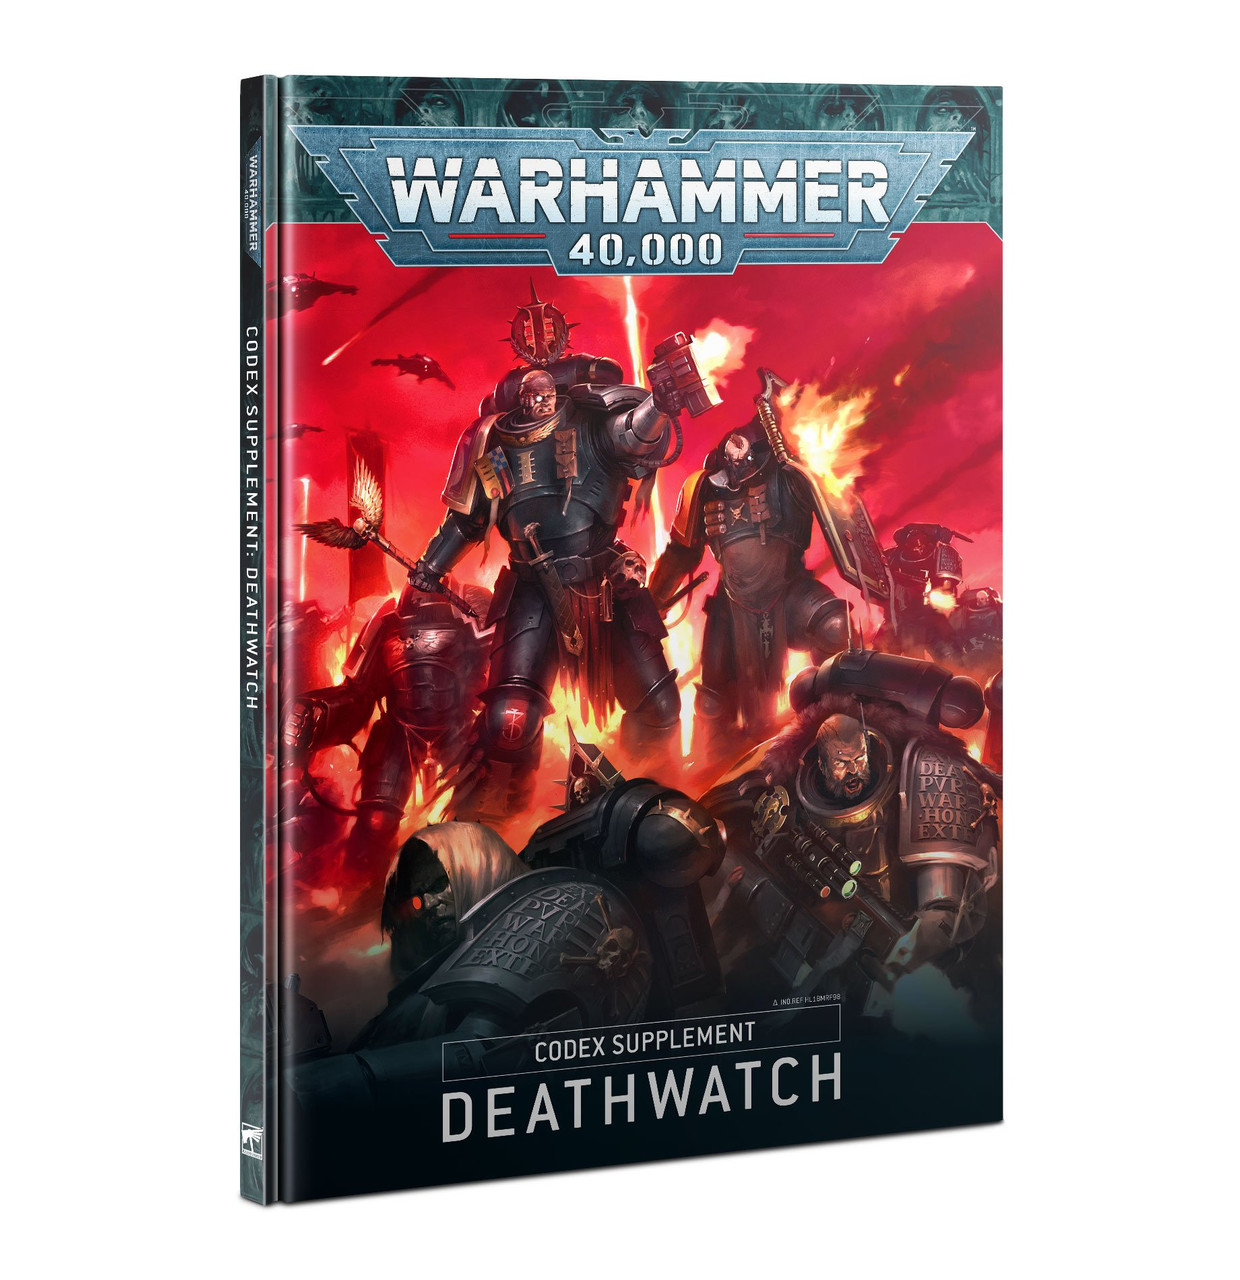 Codex Supplement: Deathwatch